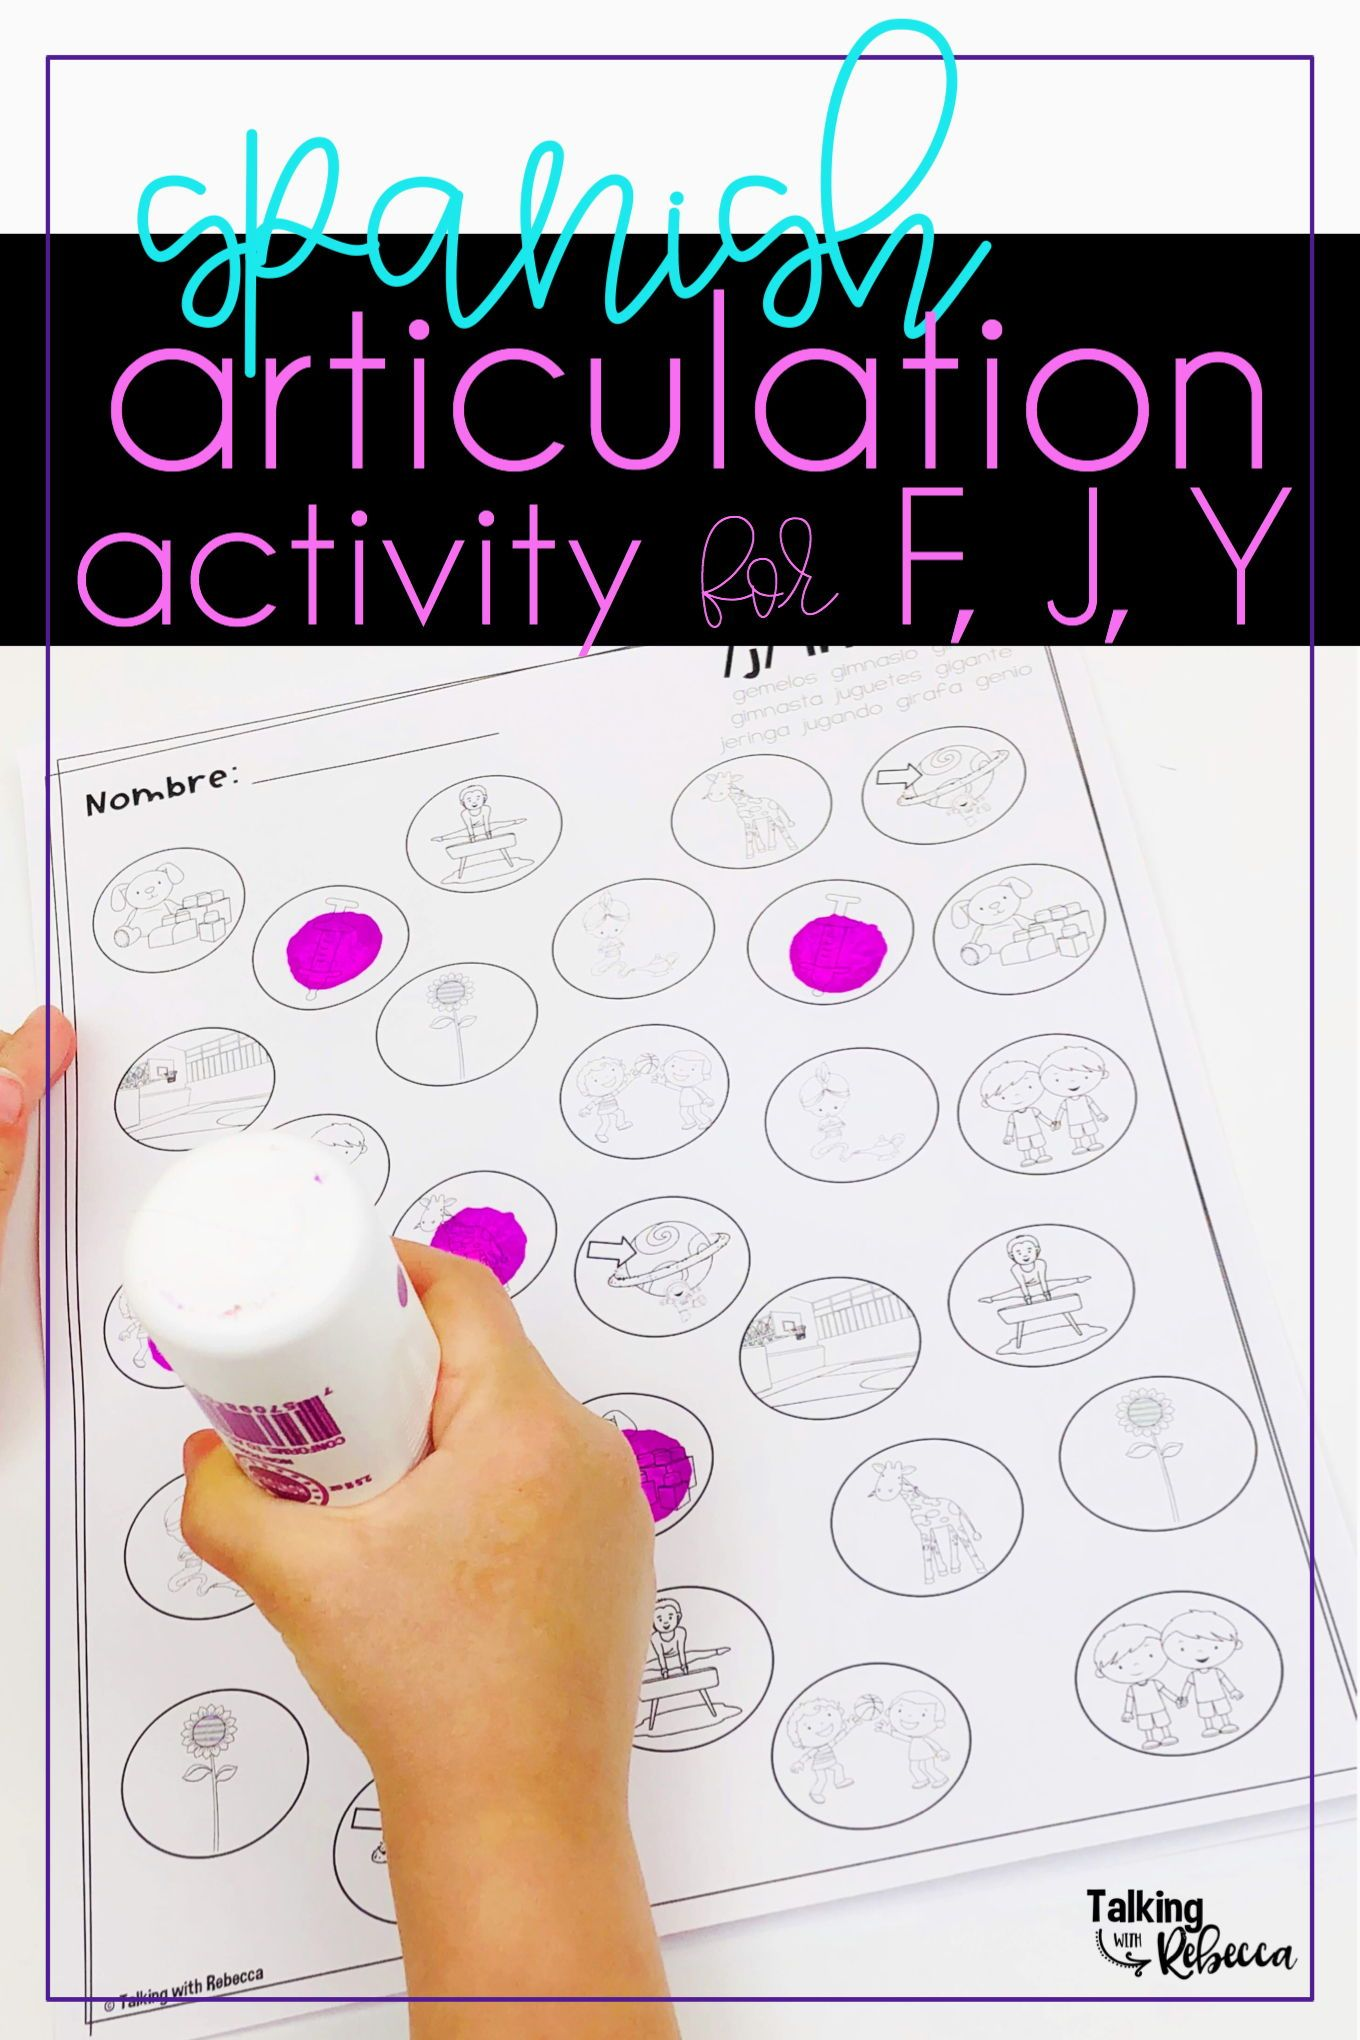 Spanish Speech Therapy Articulation Activity For F J Y